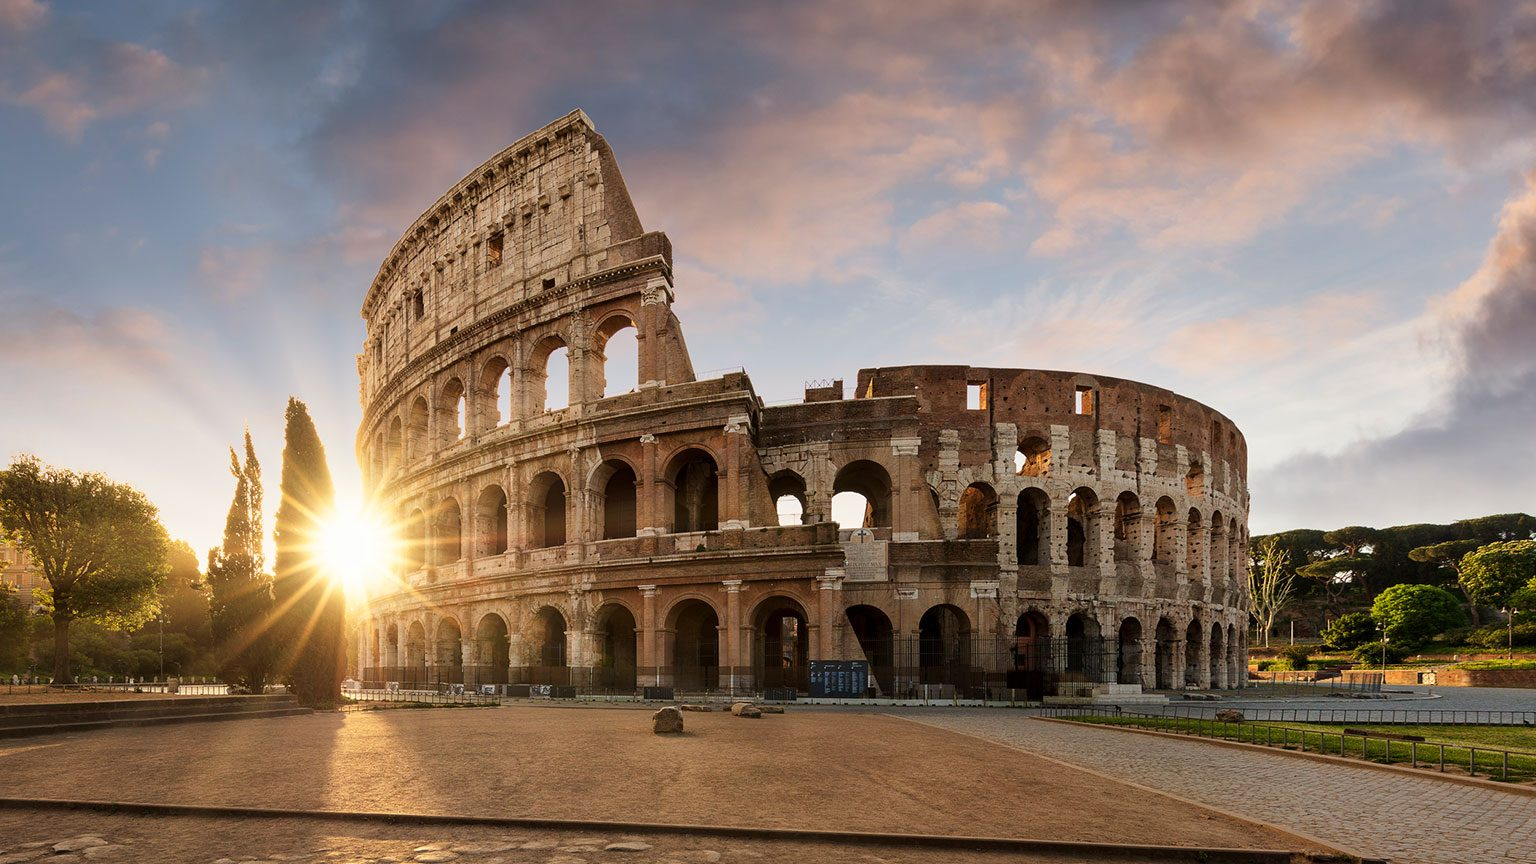 The Colosseum in Roma, Italy at sunset with the sun shining